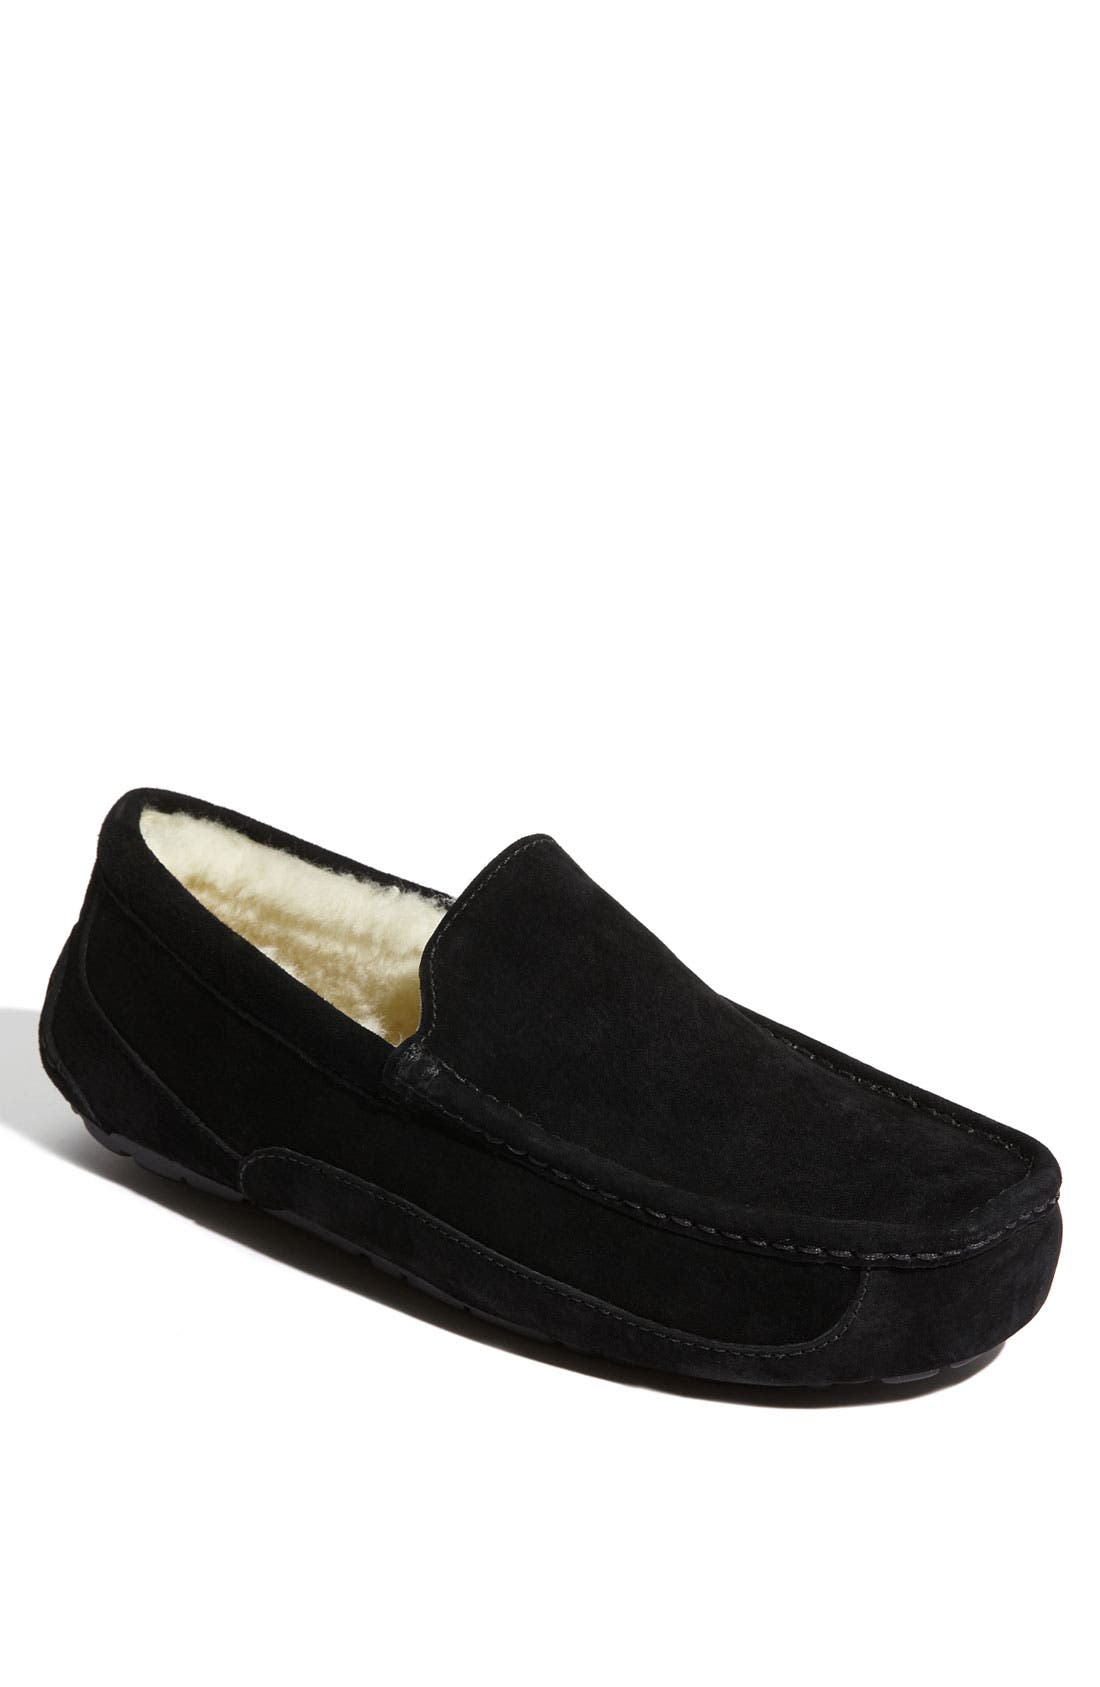 Ascot Suede Slipper,                         Main,                         color, BLACK SUEDE